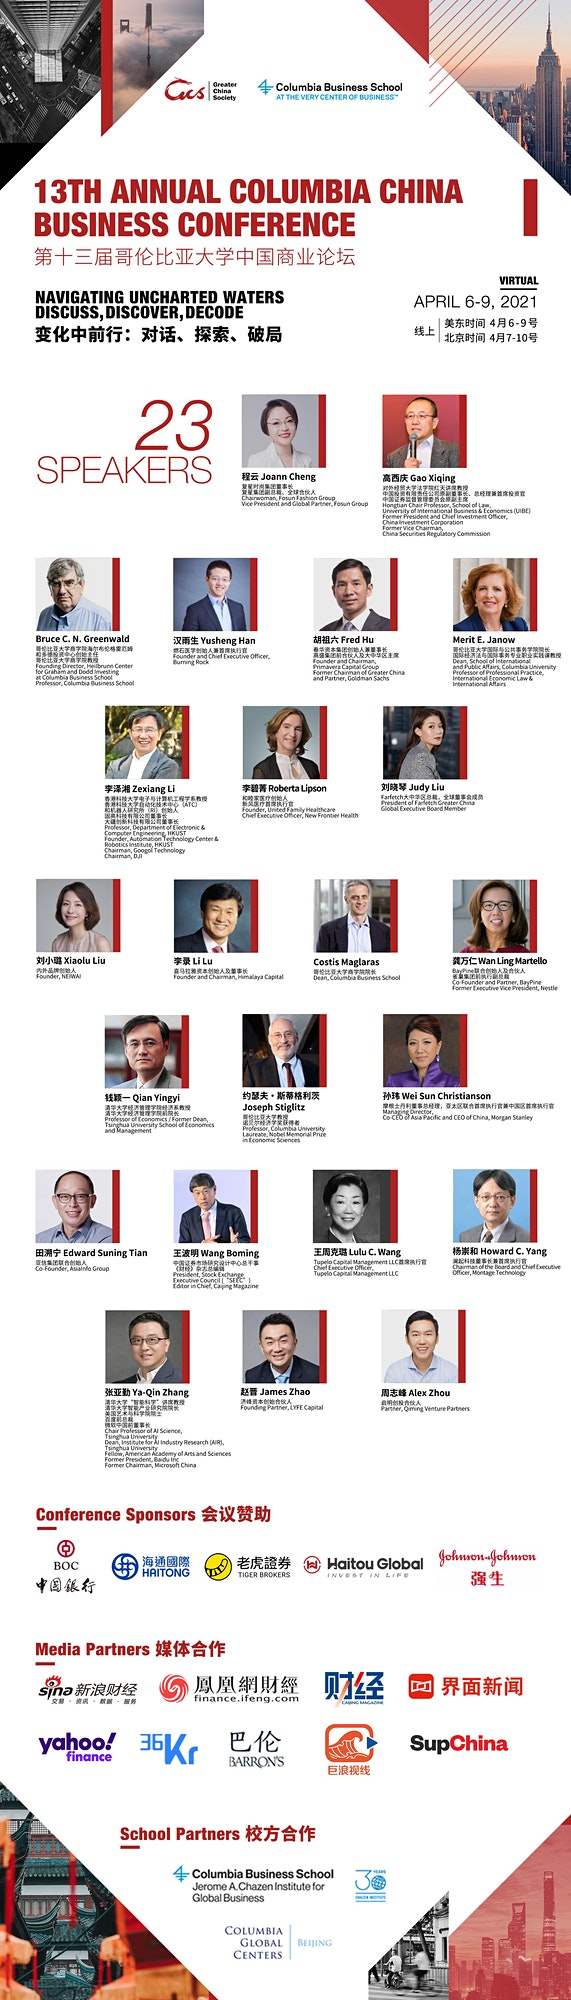 The 13th Annual Columbia China Business Conference image